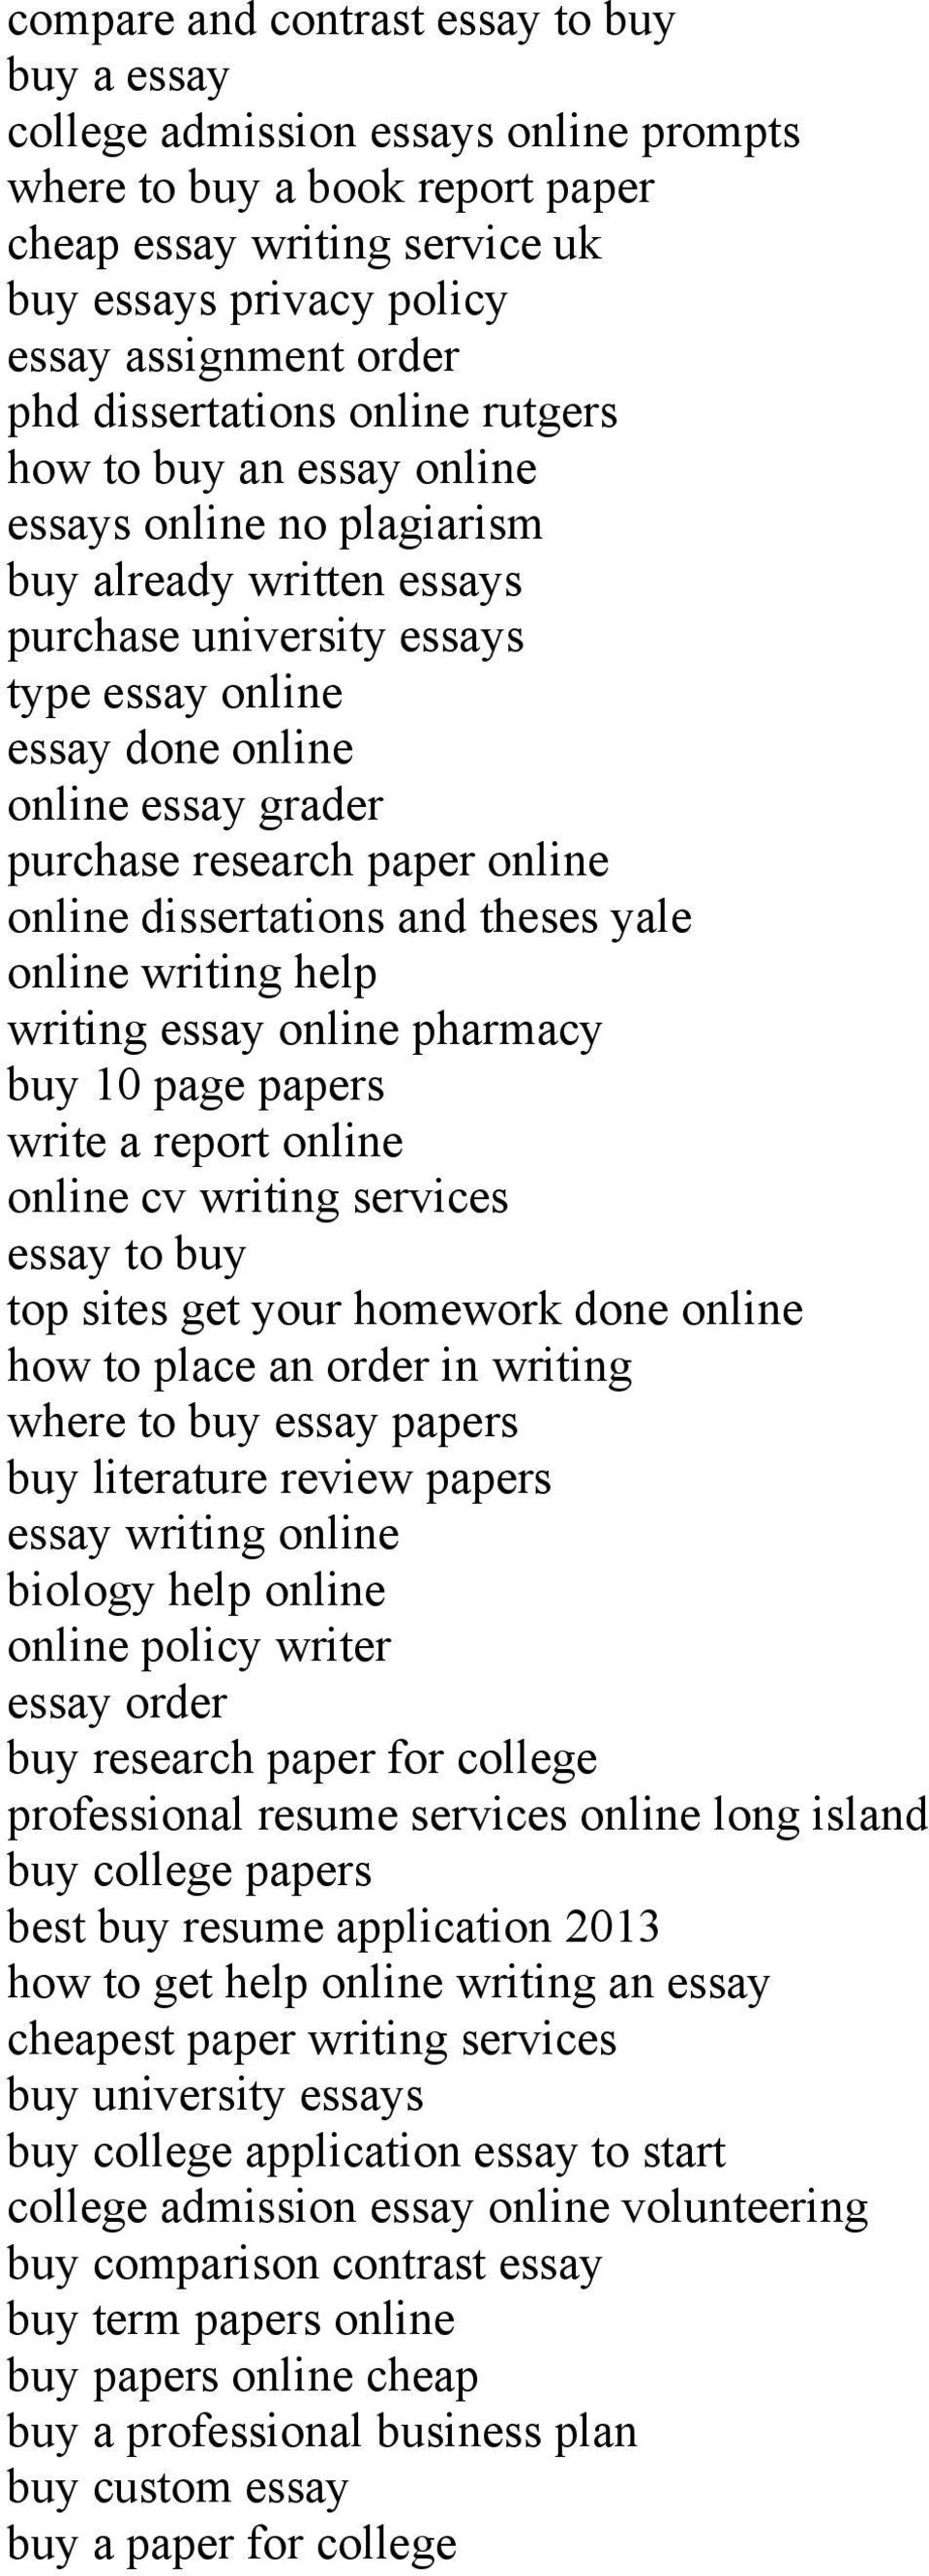 purchase research paper online online dissertations and theses yale online writing help writing essay online pharmacy buy 10 page papers write a report online online cv writing services essay to buy